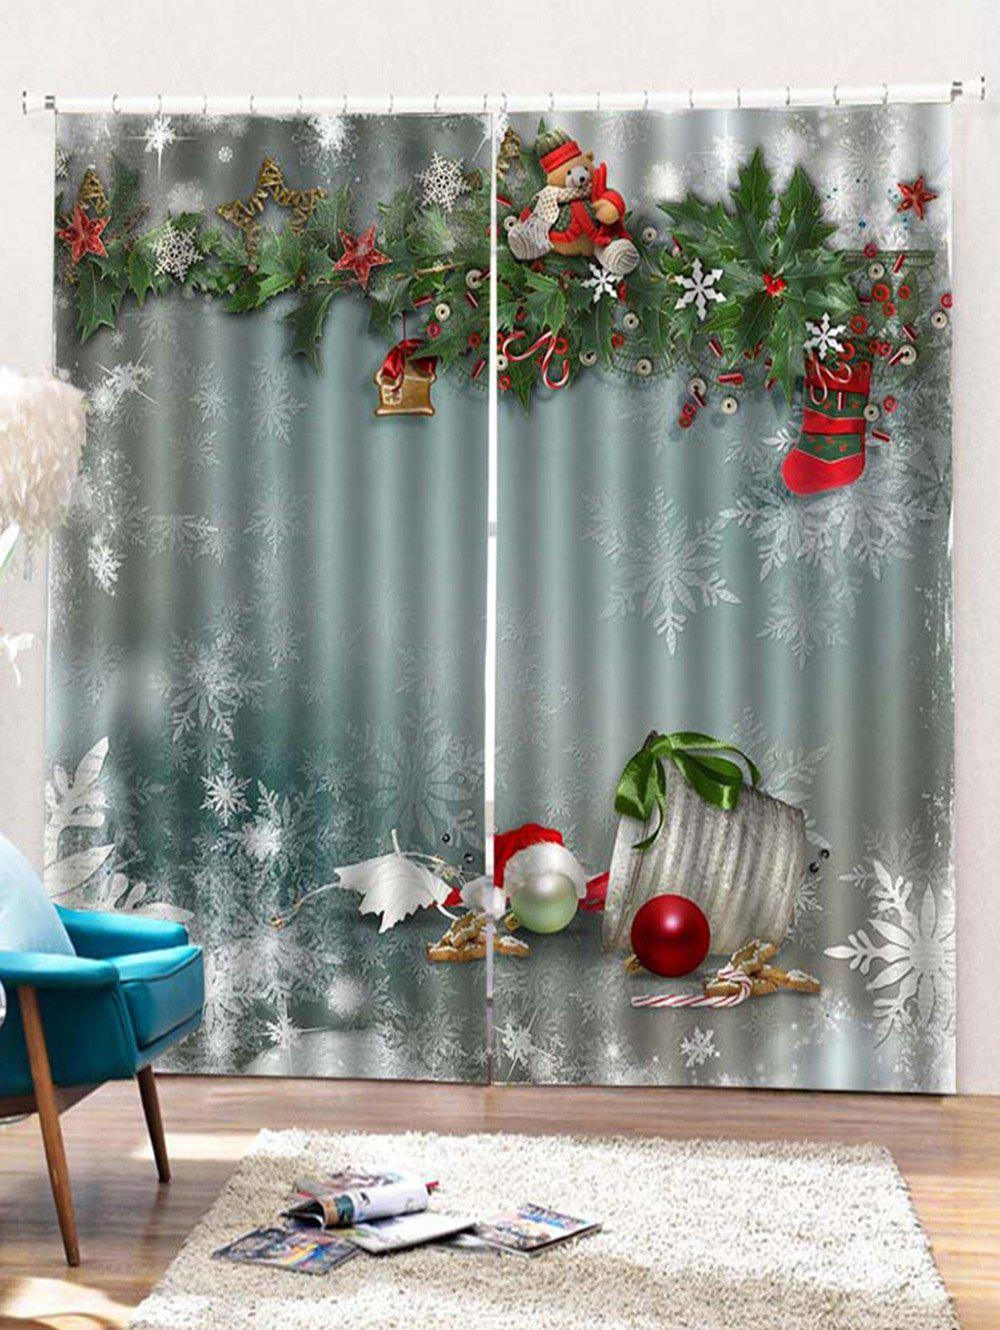 Buy 2 Panels Christmas Merry Print Window Curtains